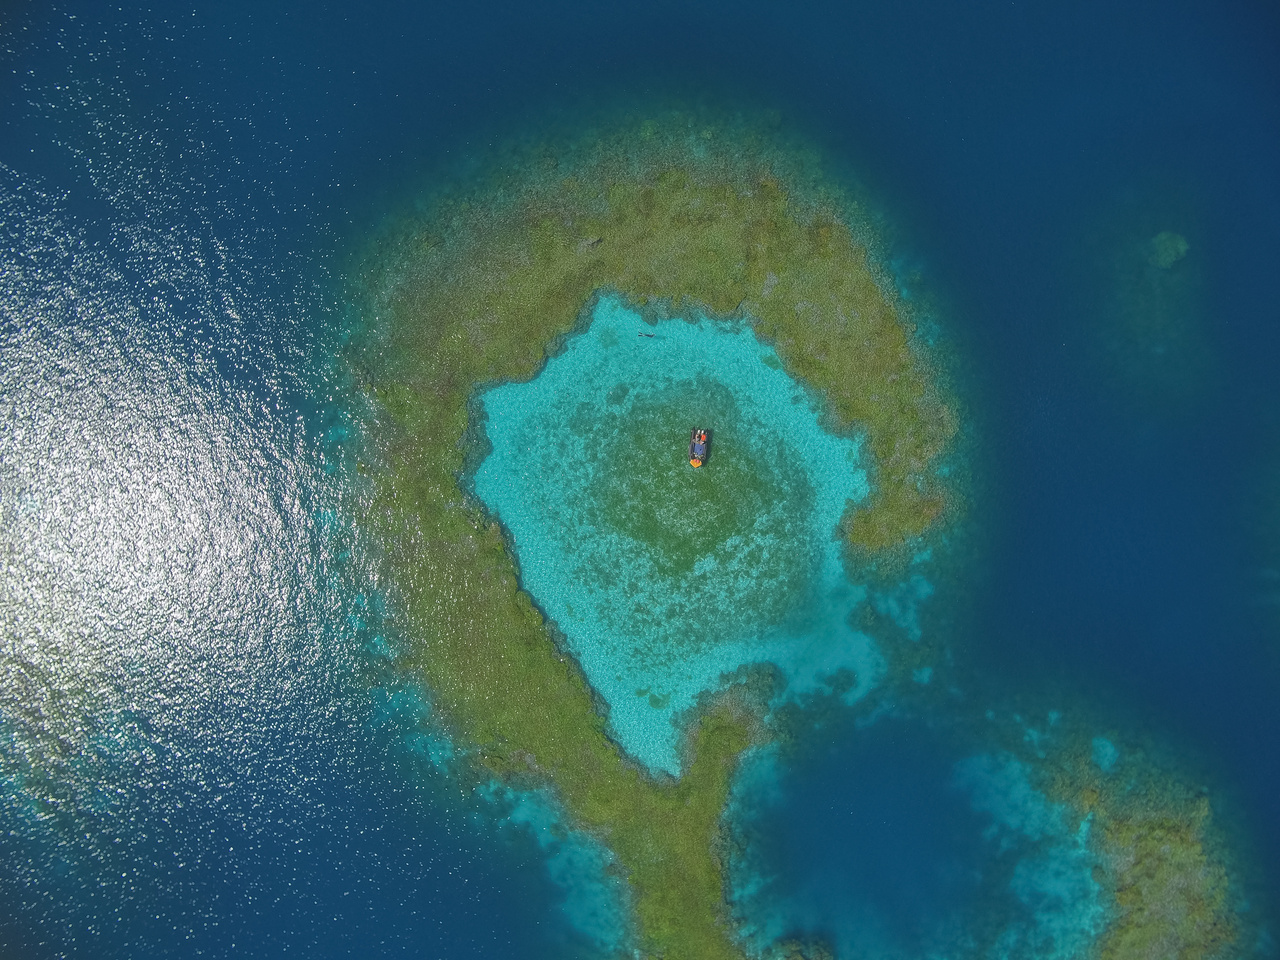 A striking aerial view of a section of the Pearl and Hermes Atoll. A part of the Papahānaumokuākea Marine National Monument, the reef area of this atoll spans over 450 square miles (194,000 acres).(Photo: NOAA Fisheries/Steven Gnam)